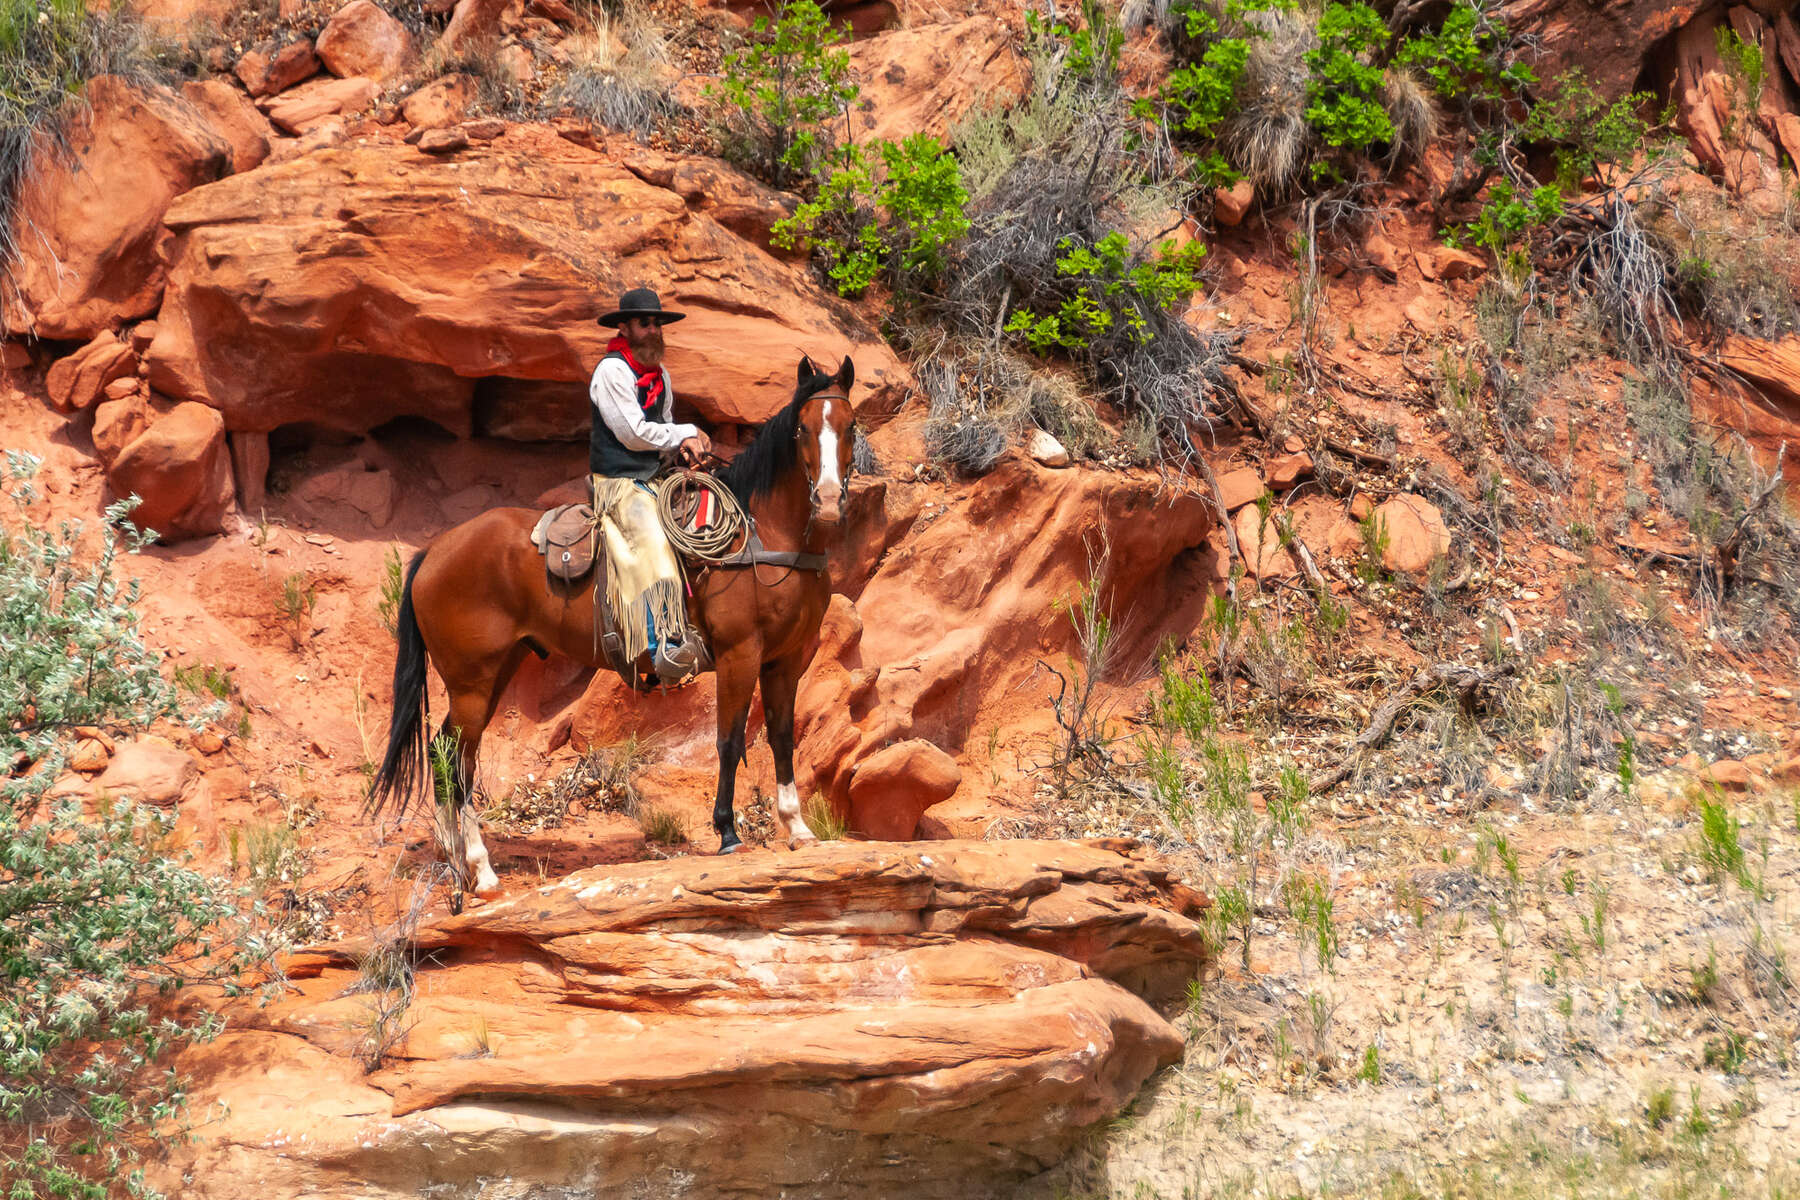 Trail riding in the Wild West of America